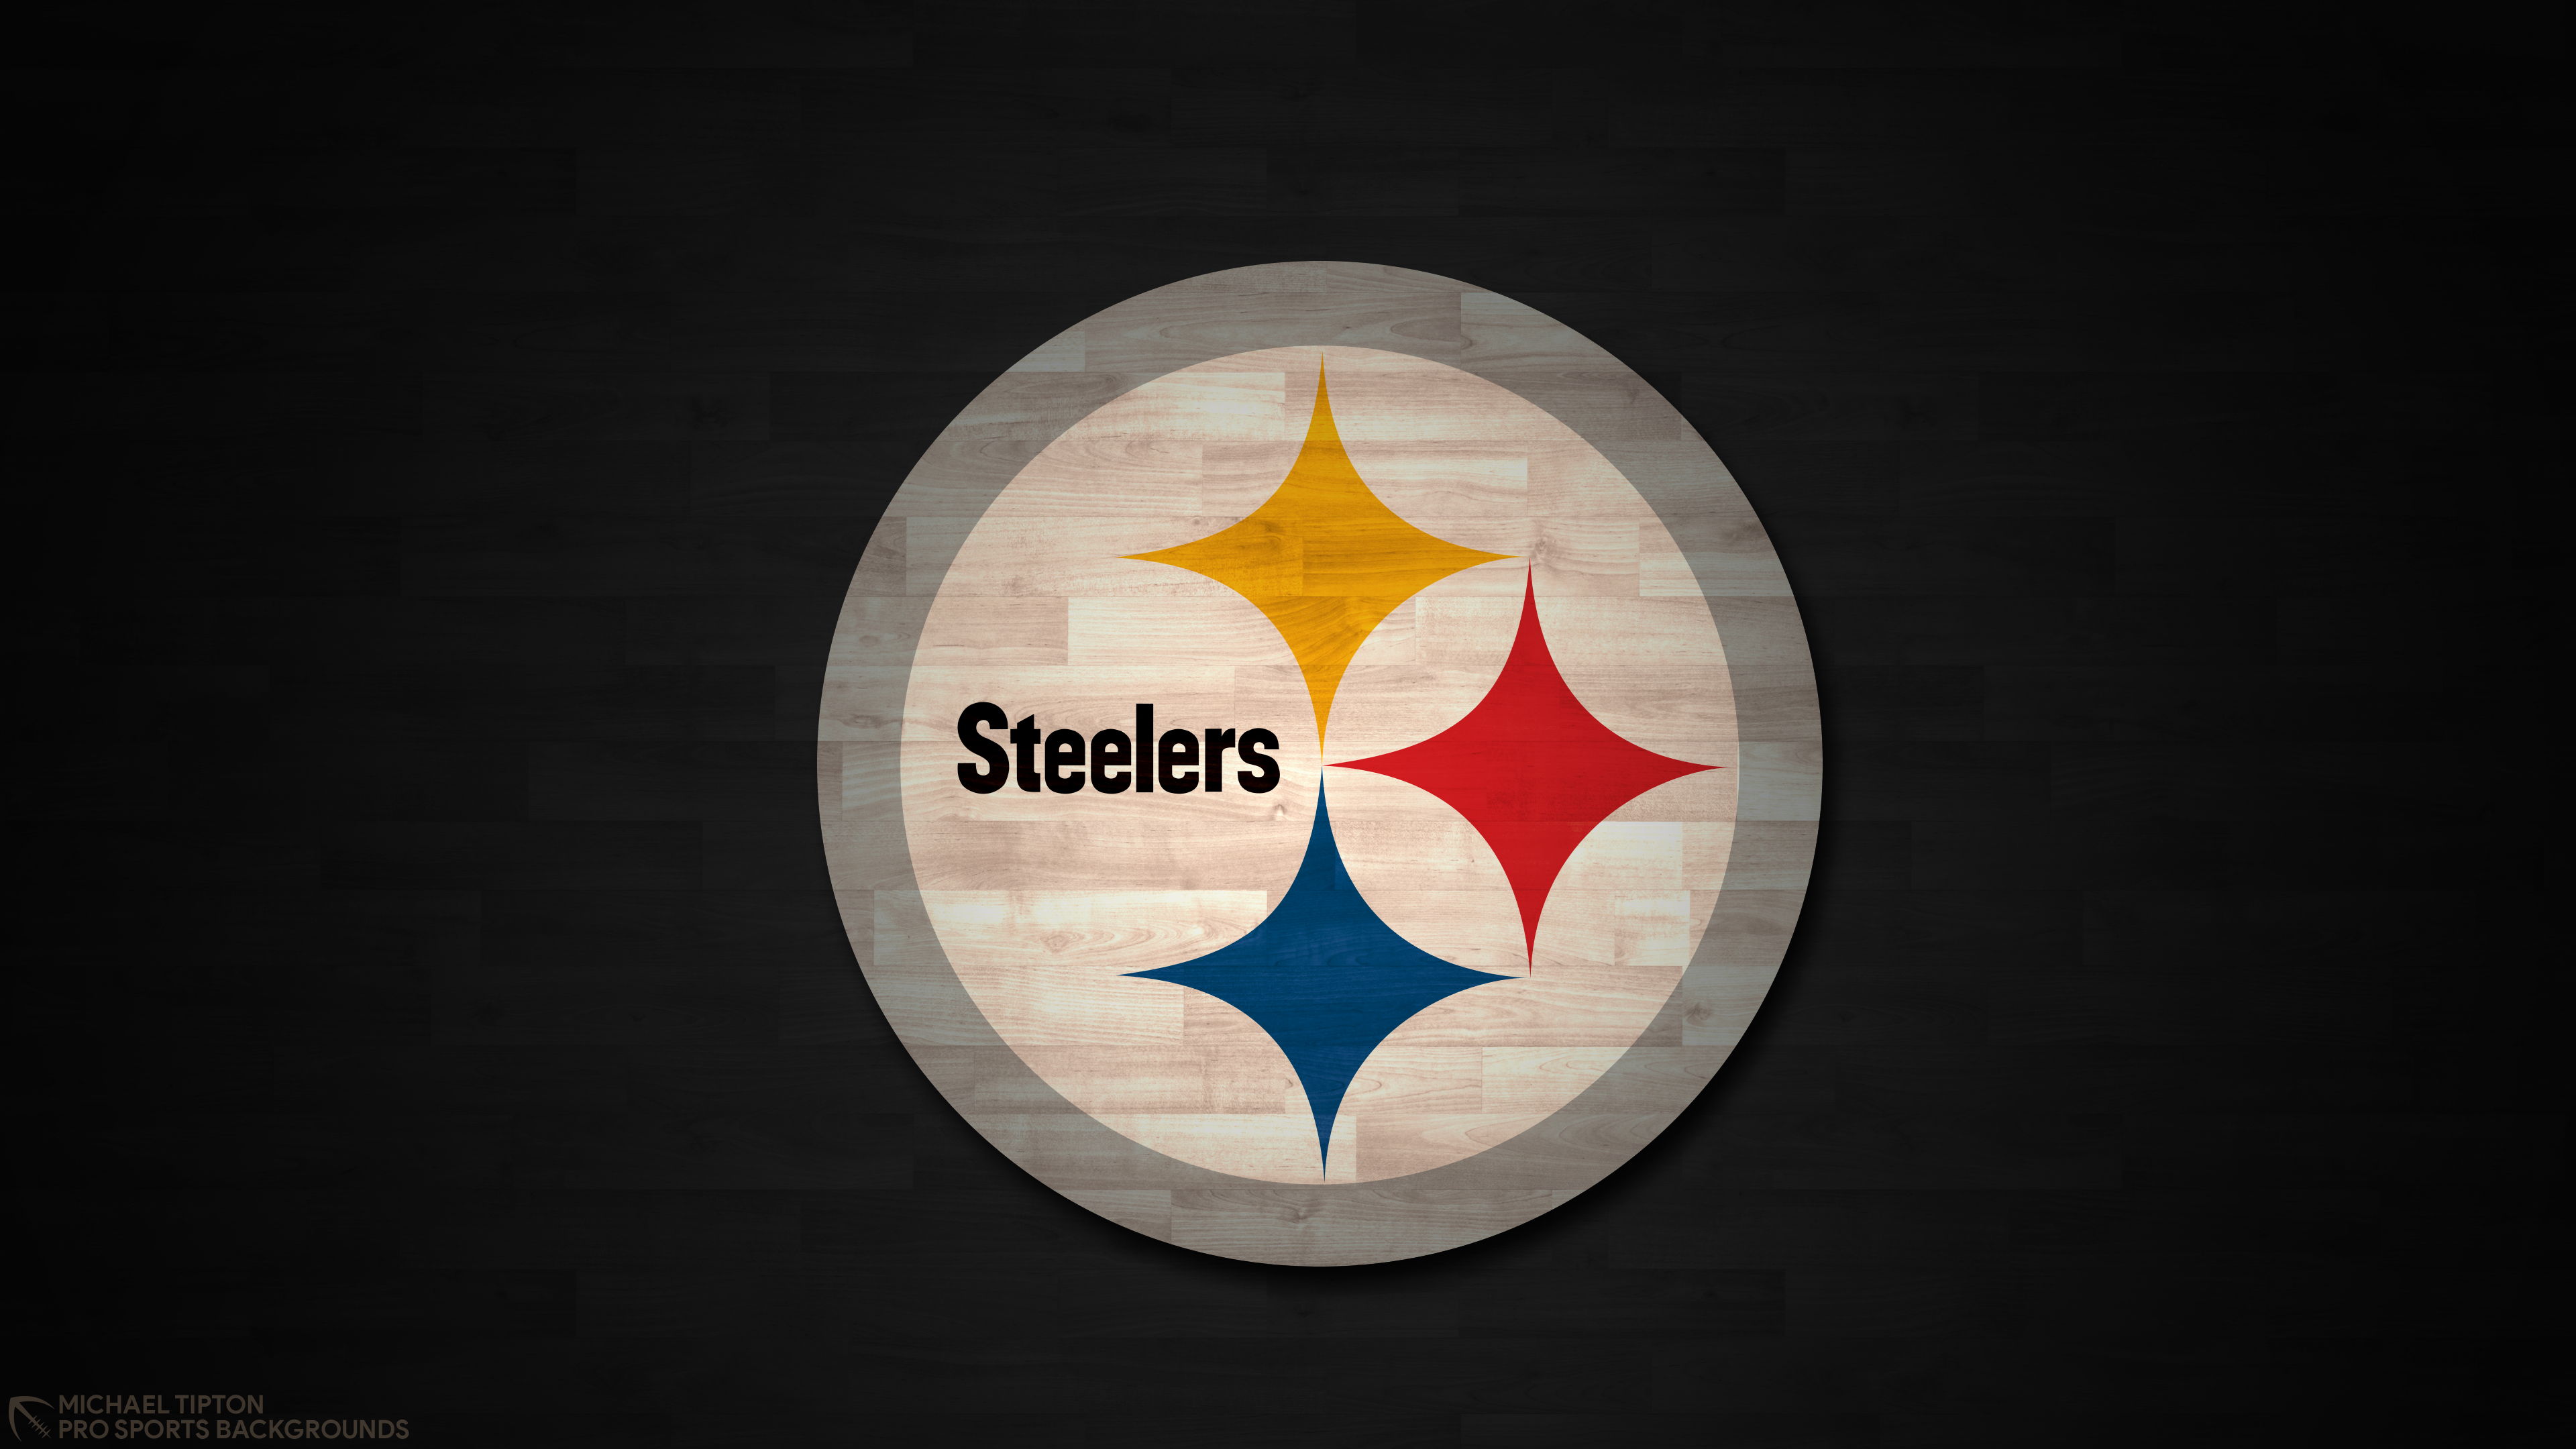 3840x2160 - Steelers Desktop 6